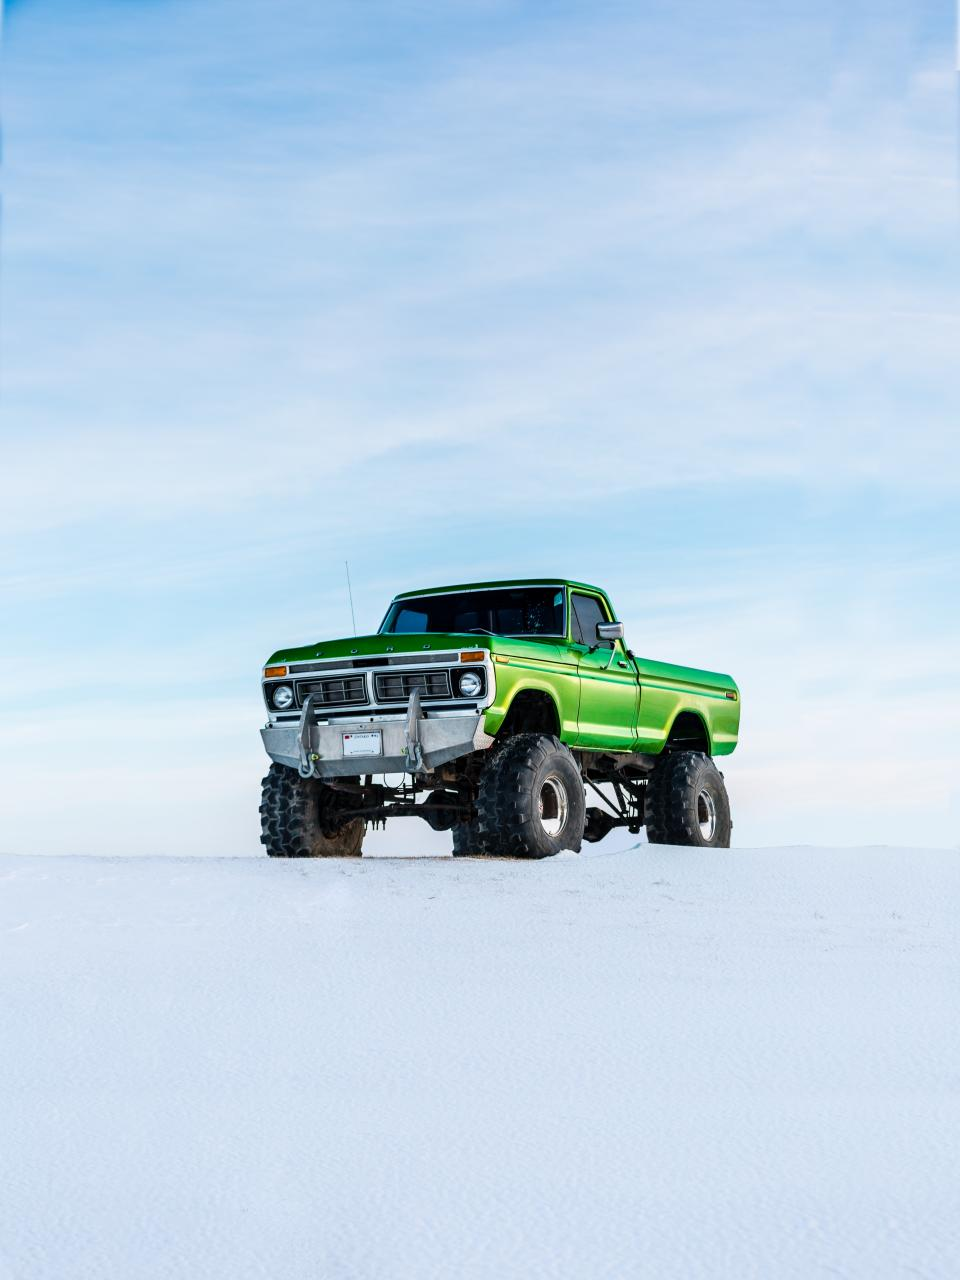 monster truck, 4x4, car, vehicle, transportation, travel, adventure, tires, pick up, snow, winter, cold, weather, white, clouds, sky